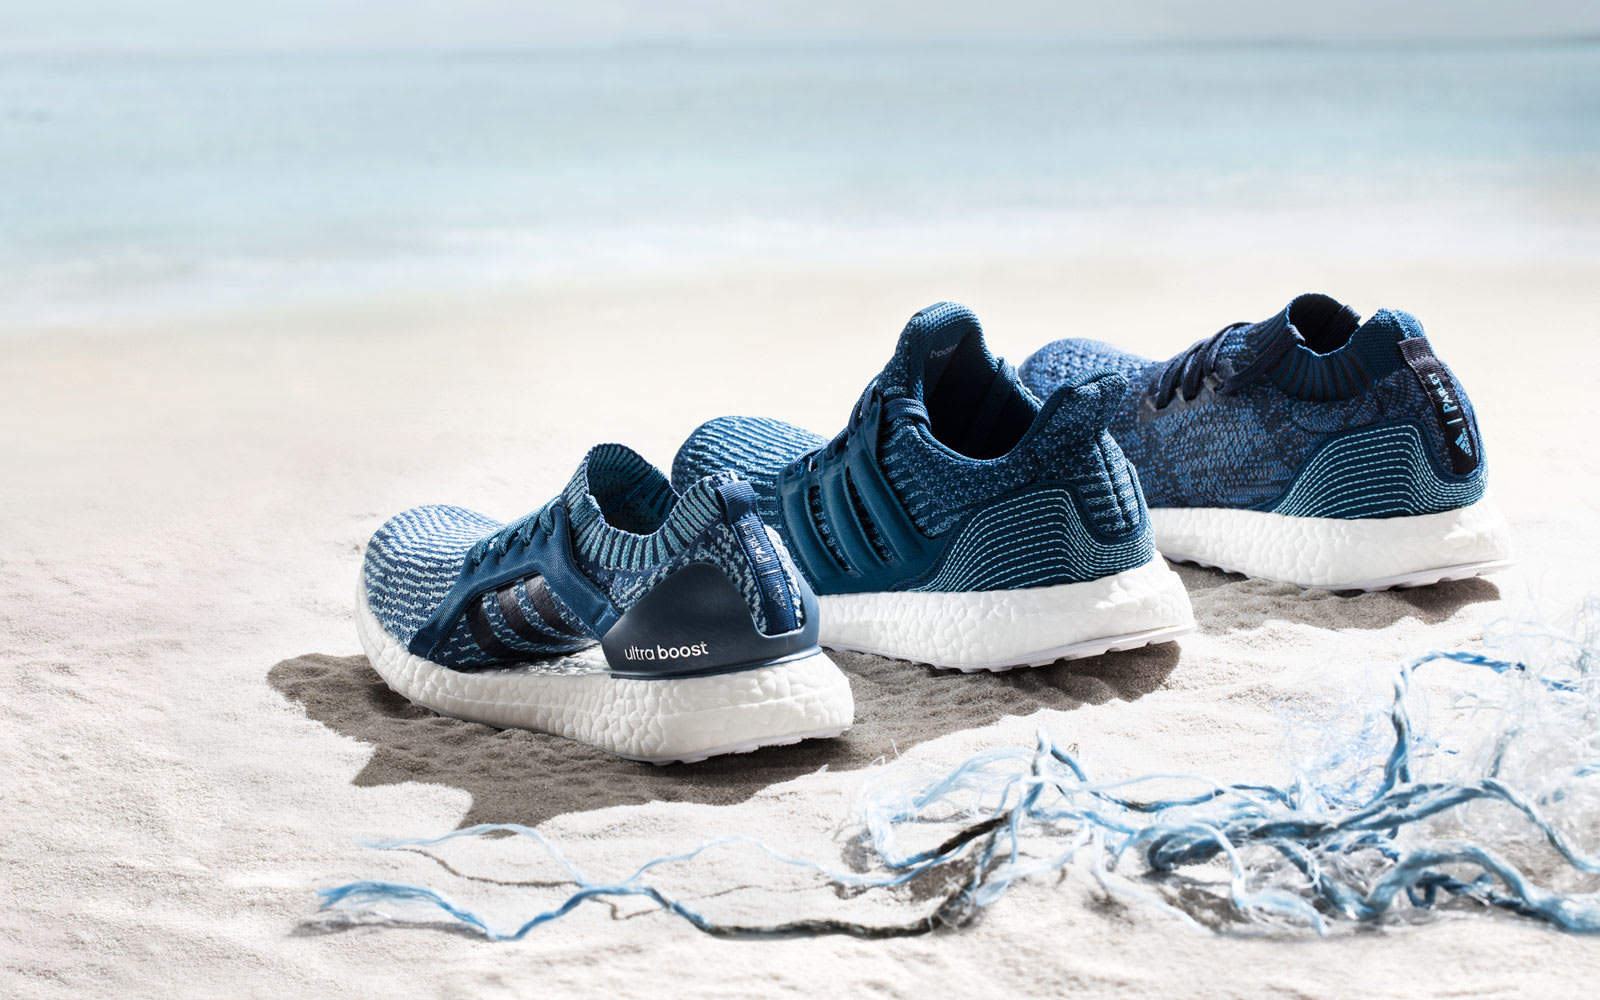 174e9a7c38ad0 Adidas will sell more shoes partially made with ocean trash